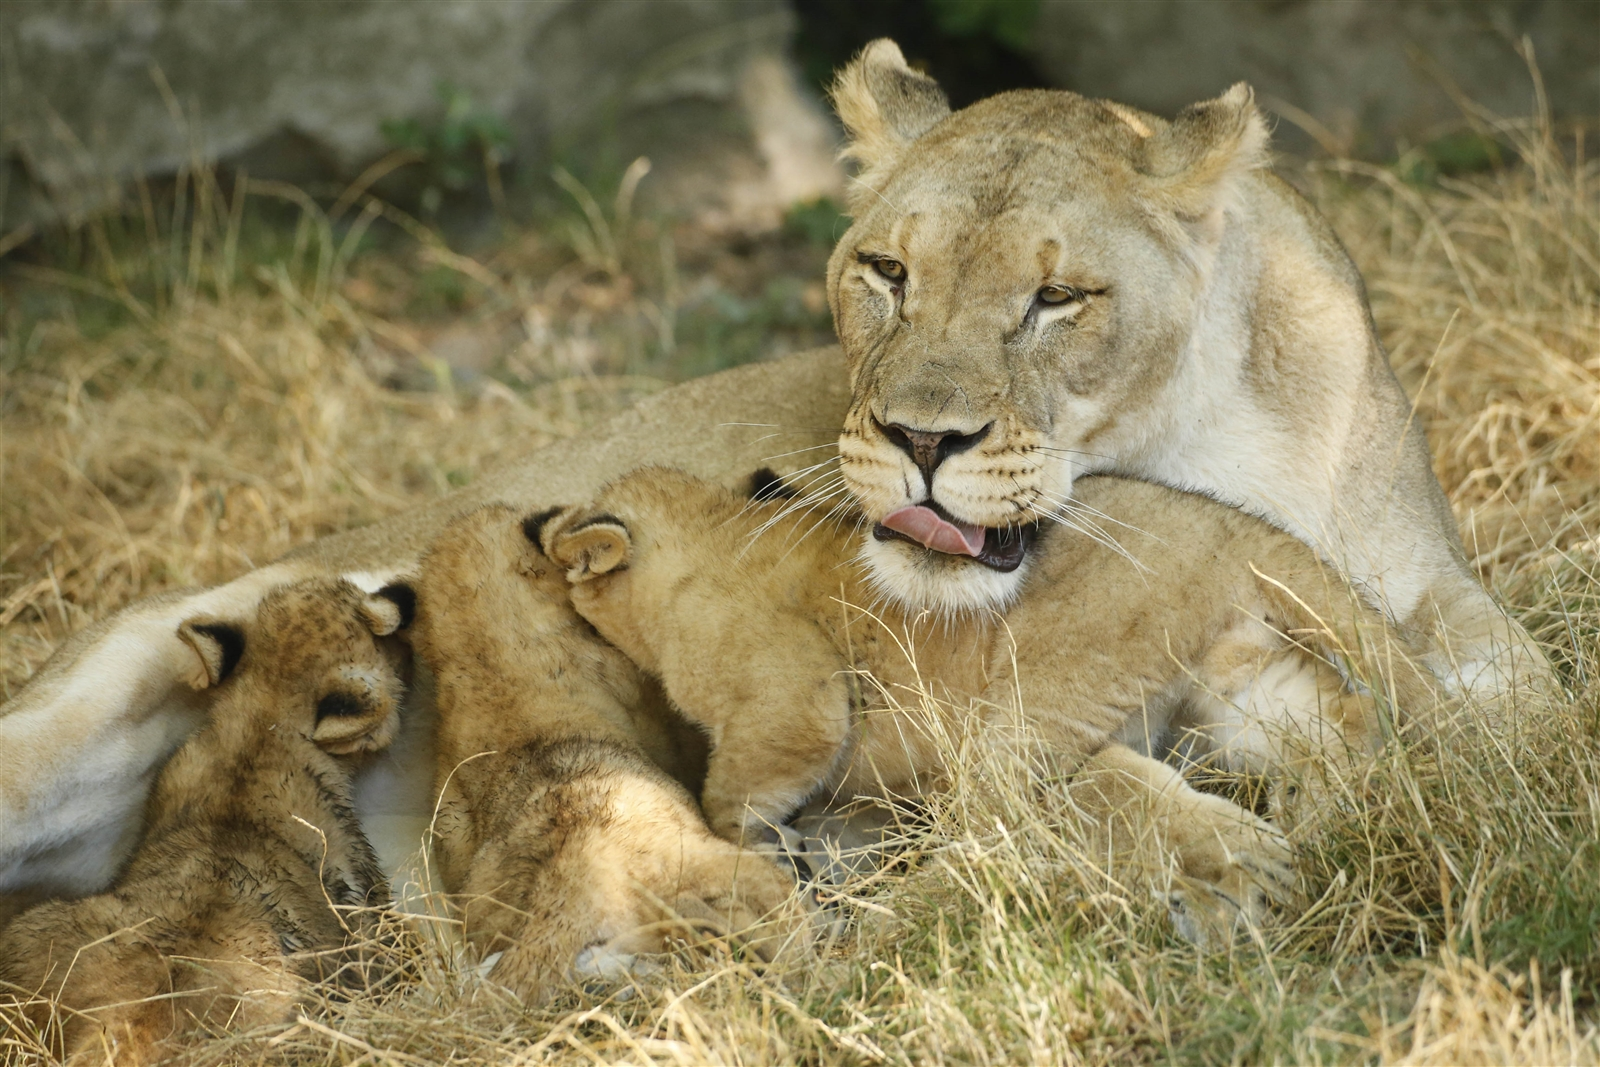 Lusaka lays patiently as her three new lion cubs, born May 12, nurse in their enclosure at the Buffalo Zoo Wednesday, Aug. 3, 2016.  The cubs will be unveiled at the Zoo this Saturday, along with their names, one of which is open for voting on the zoo's website.